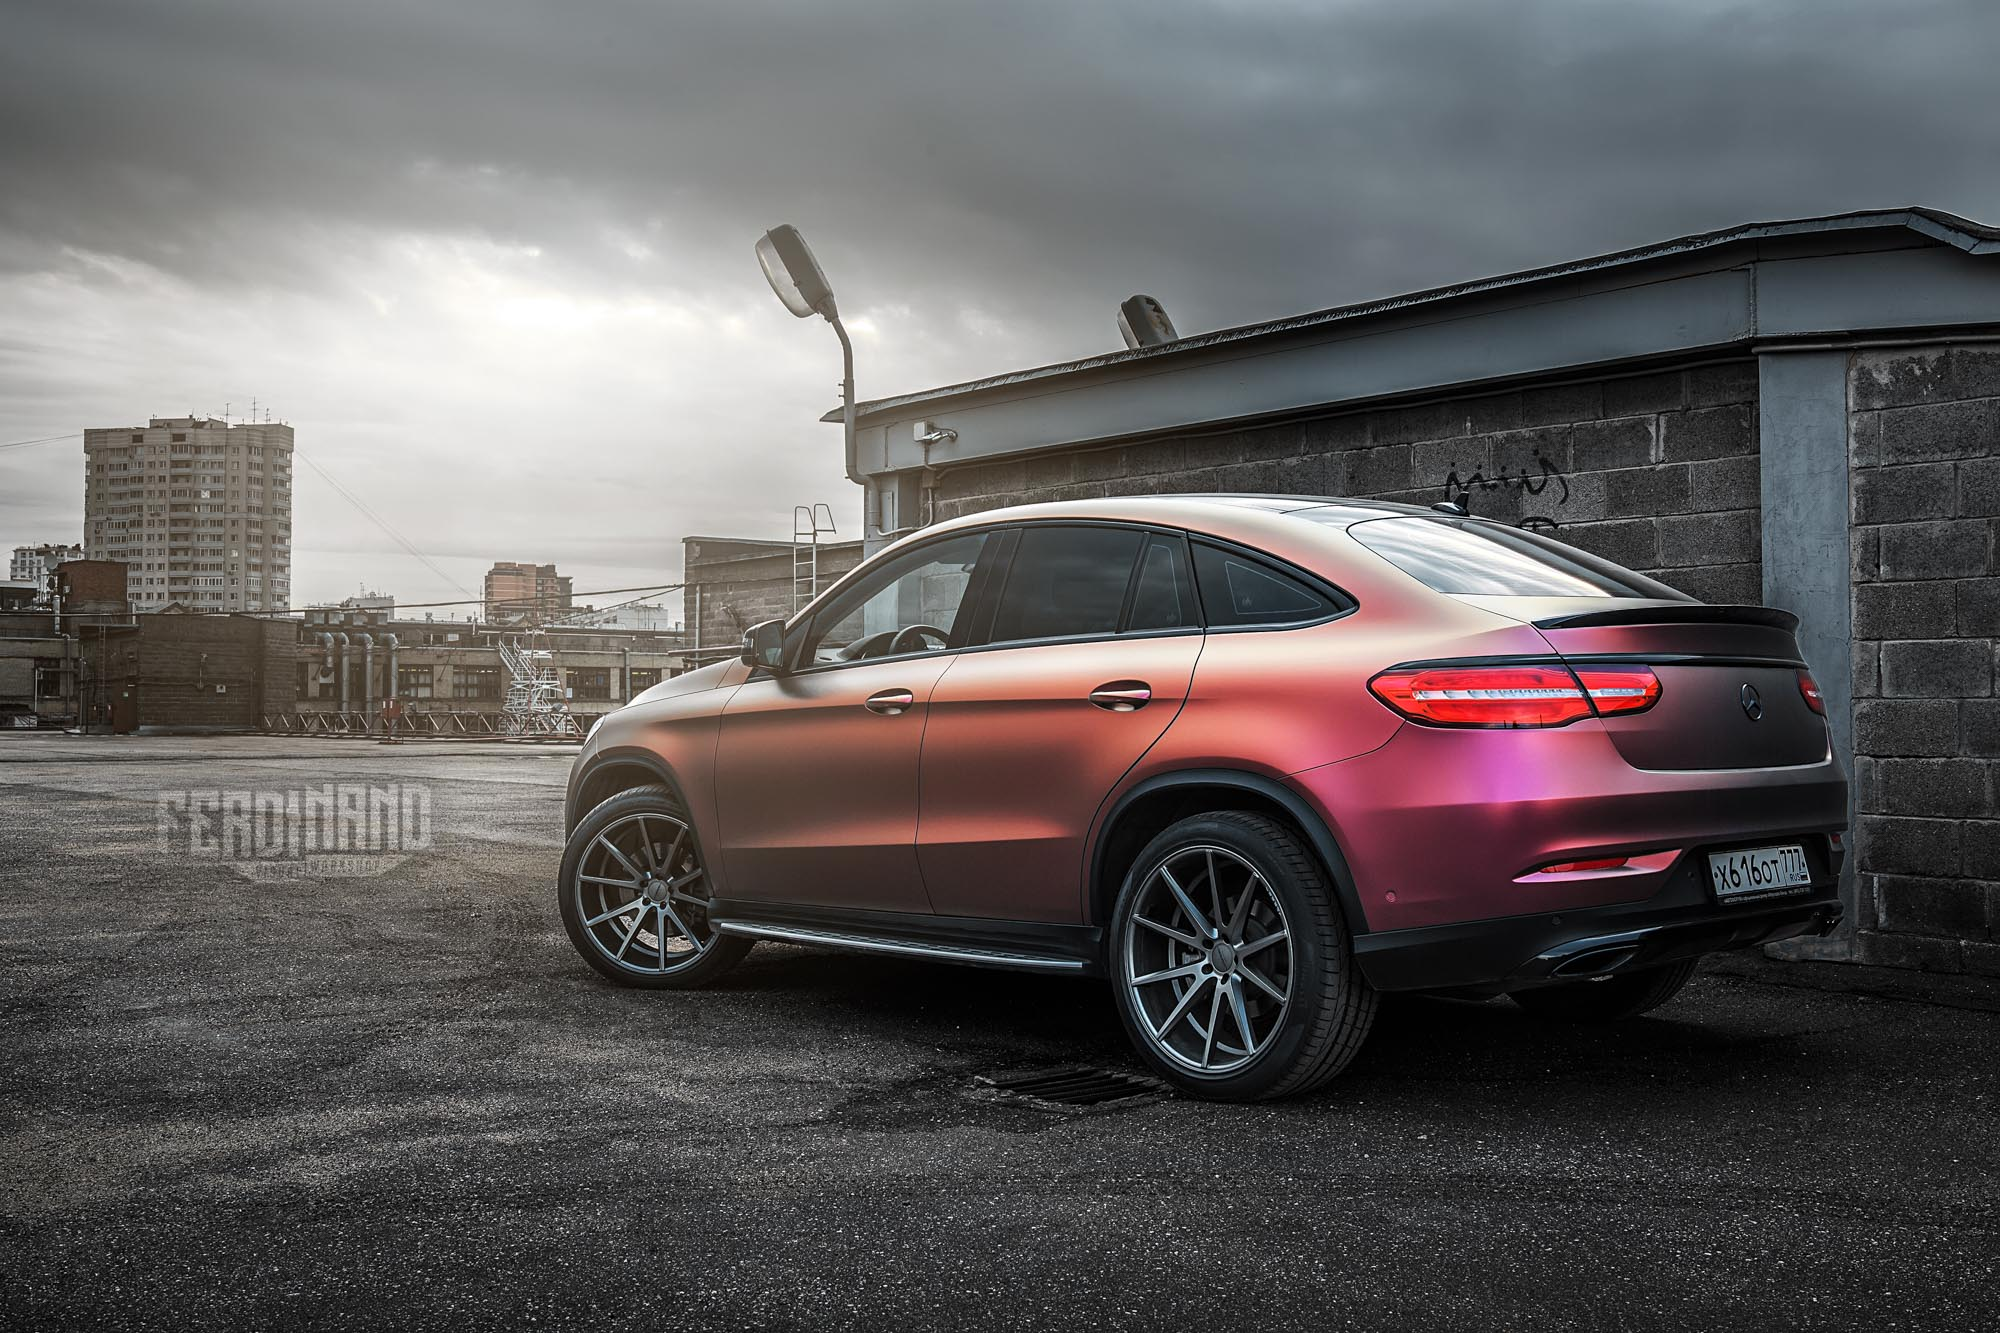 Russian Mercedes Gle Coupe Combines Vossen Wheels With Flip Wrap Autoevolution